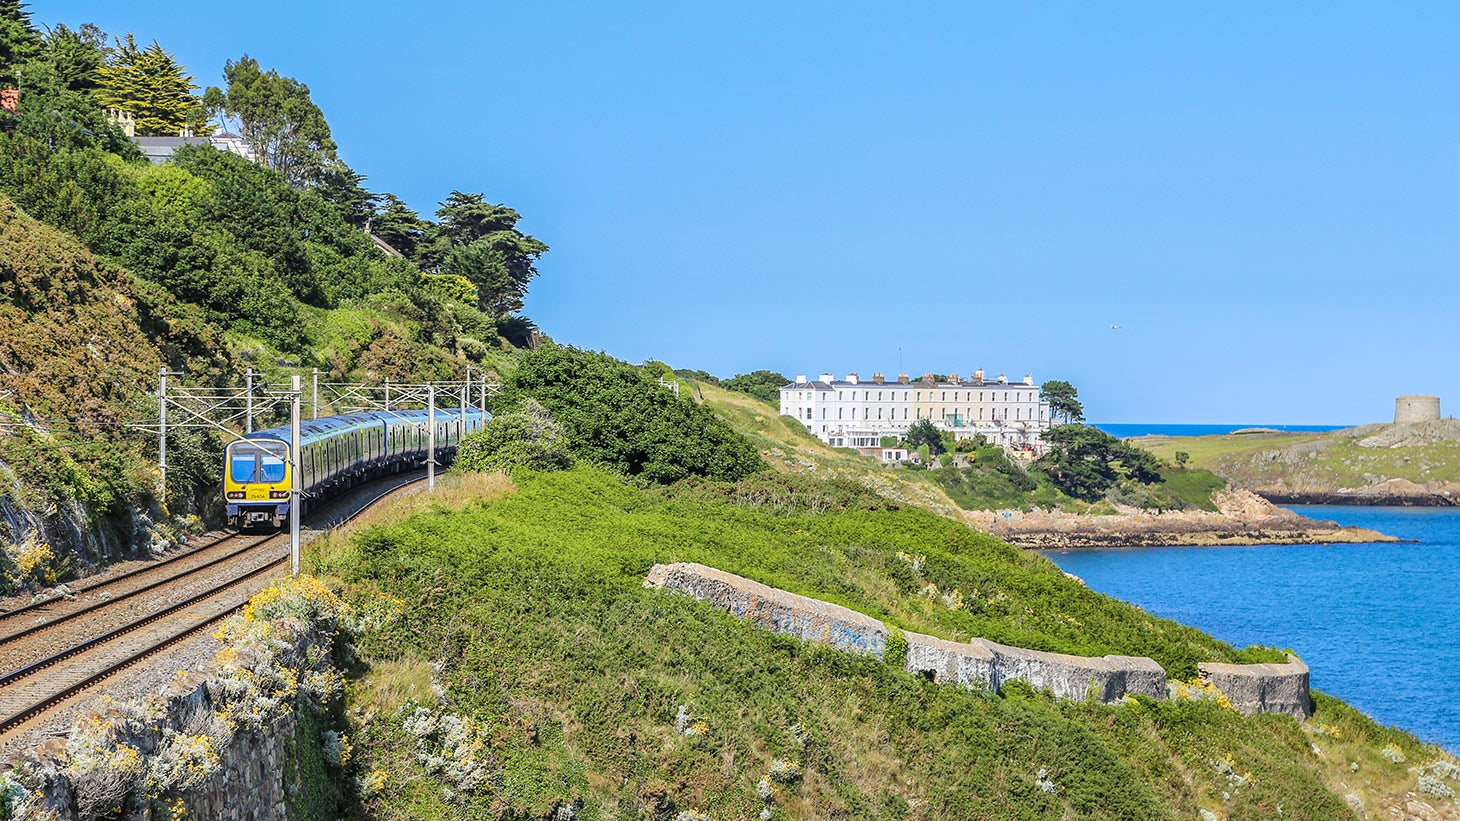 Catch the Dart to Killiney to visit the Druid's Judgement Seat.